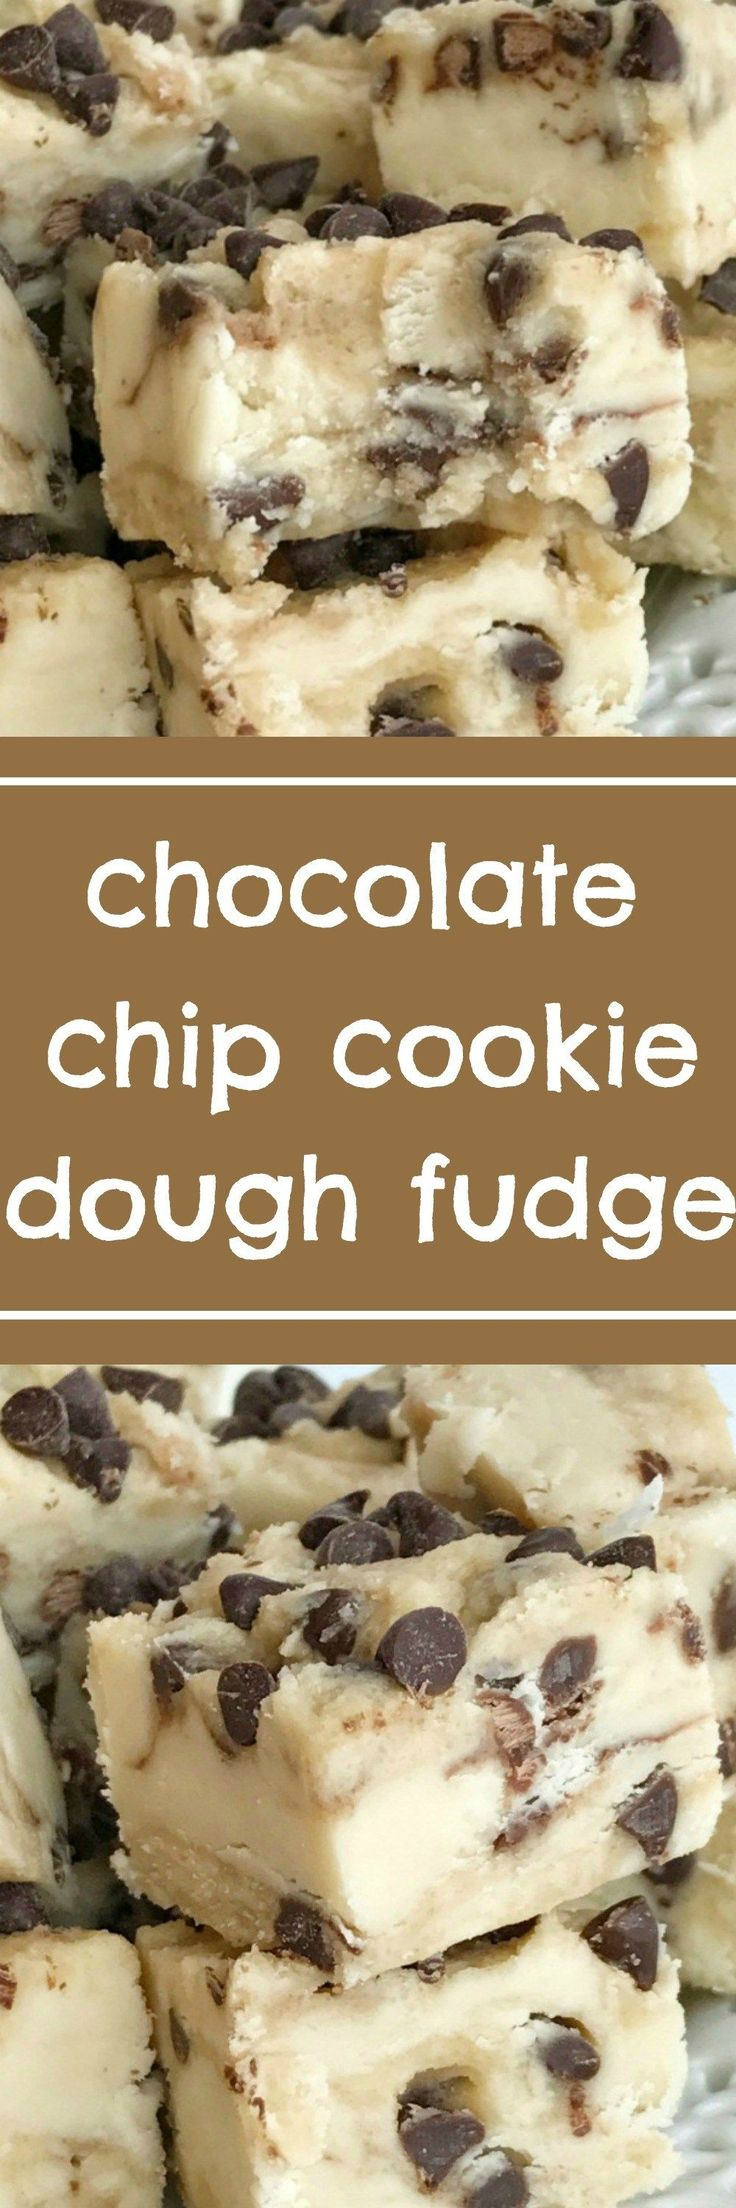 A sweet & creamy fudge that tastes exactly like chocolate chip cookie dough! No eggs so it's perfectly safe to eat. If you're looking for an extra sweet treat this Holiday and Christmas season then you have to try this chocolate chip cookie dough fudge #recipe! togetherasfamily.com #fudge #chocolatechipcookies #christmascookies